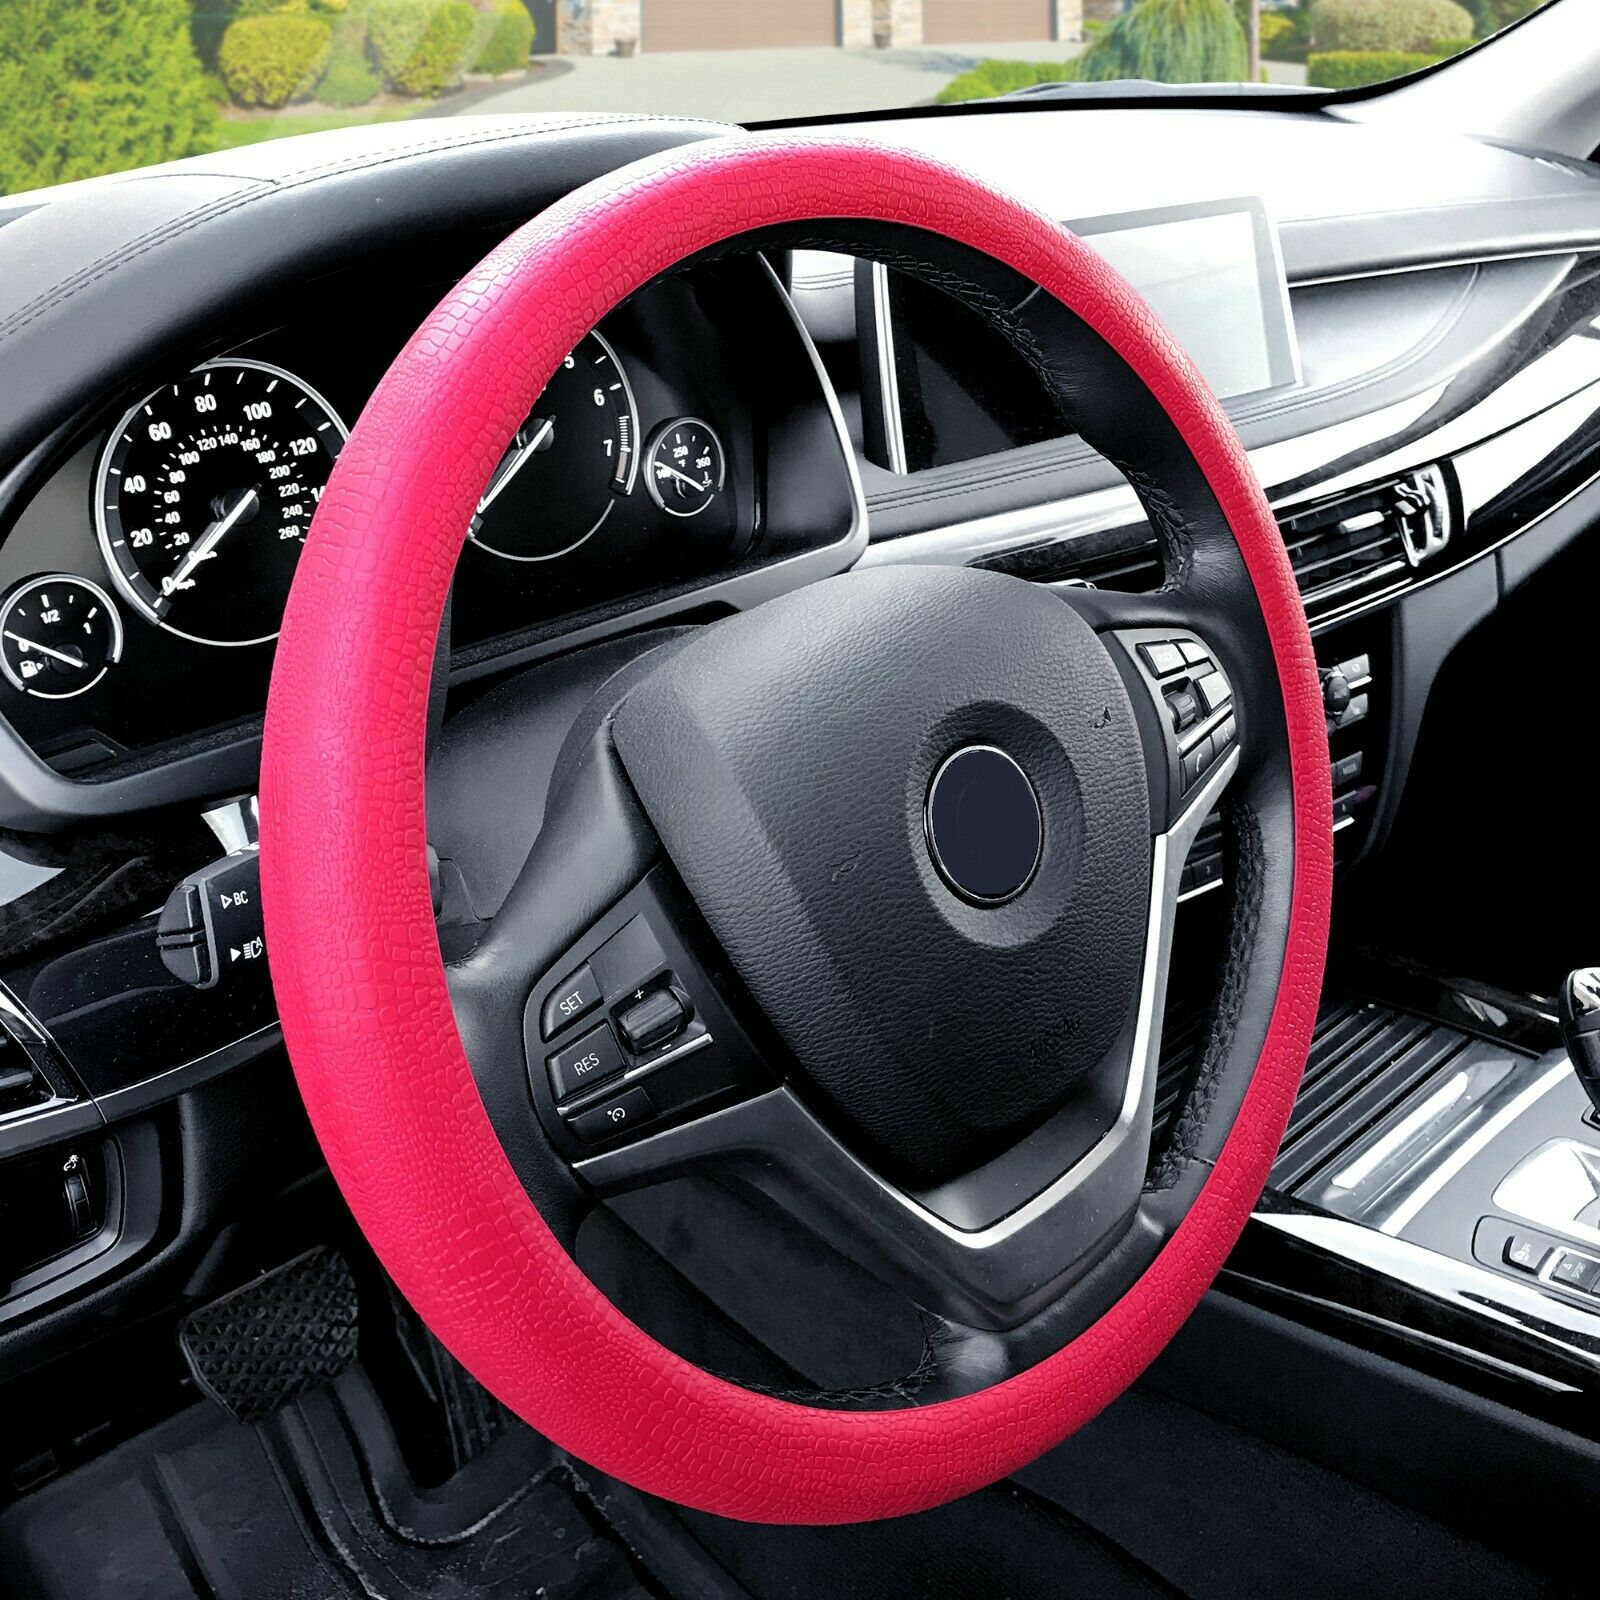 Car Silicone Steering Wheel Cover Snake Pattern Auto Accessory Universal Fit